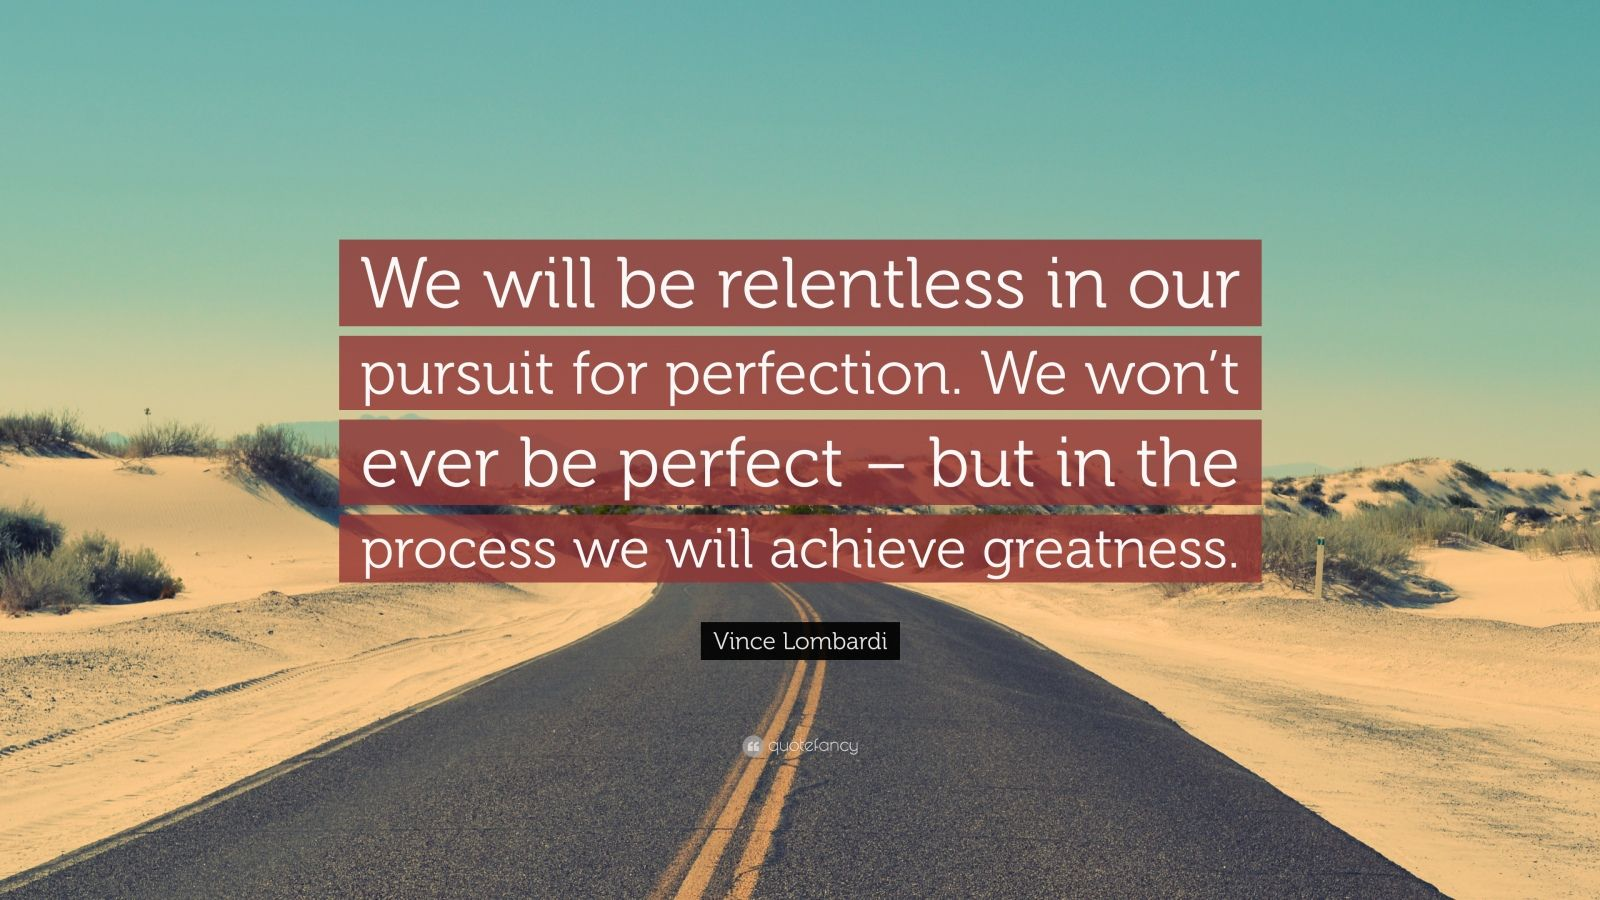 """Vince Lombardi Quote: """"We will be relentless in our pursuit for perfection. We won't ever be perfect – but in the process we will achieve greatness."""""""